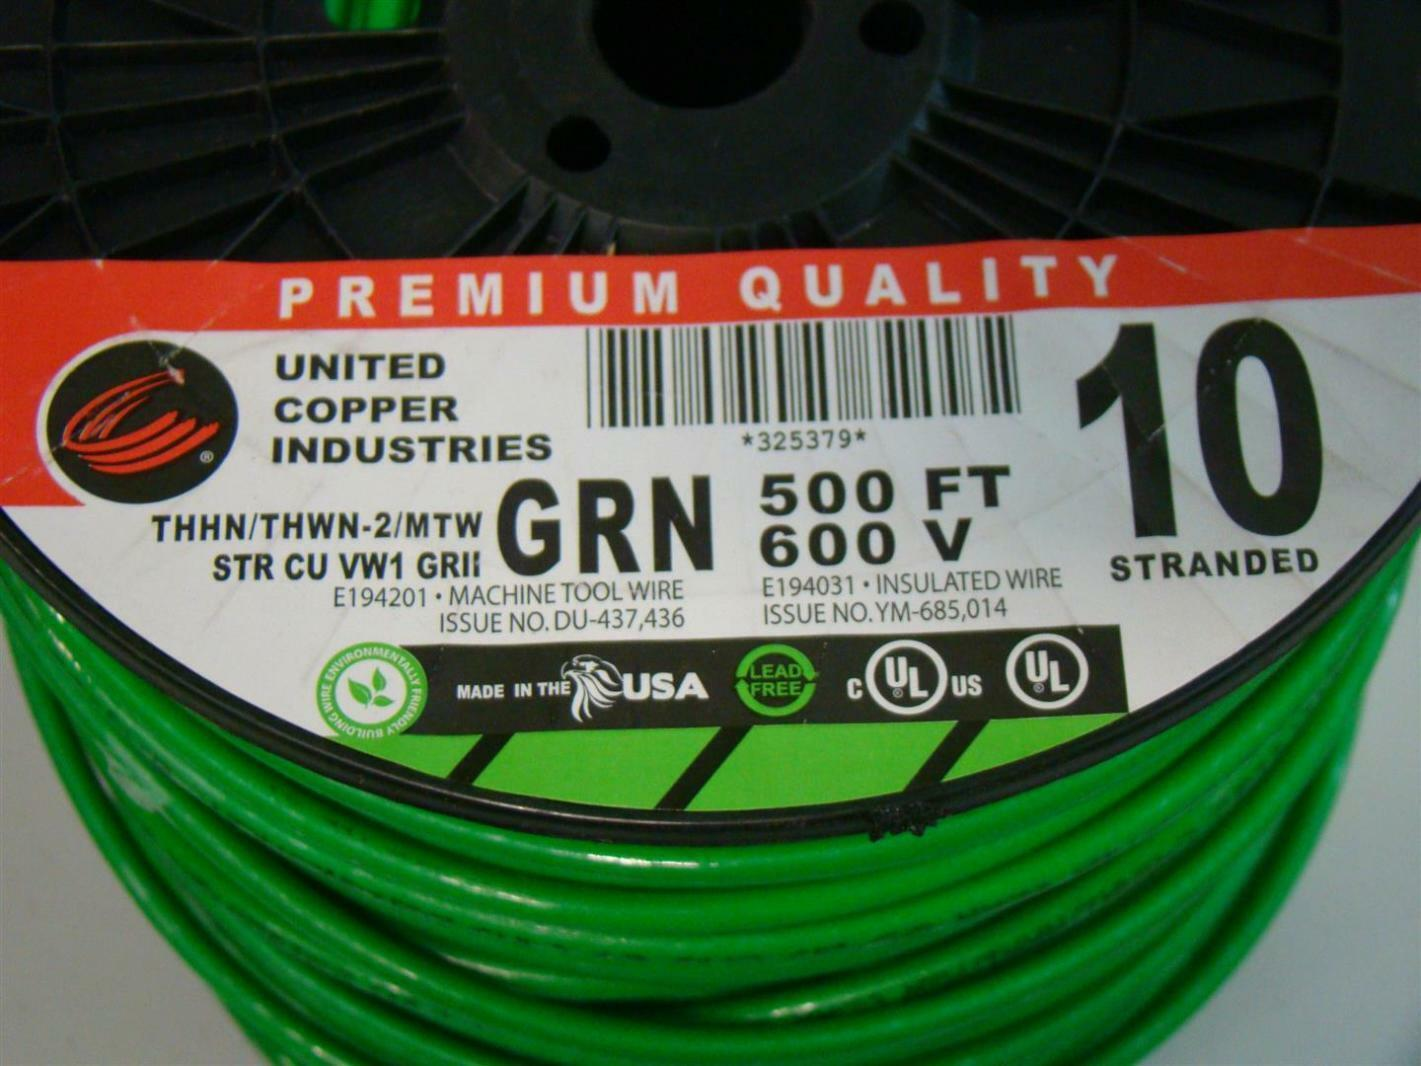 United Copper 500\' thhn #10 GRN 600V E194201 Machine Tool Wire | eBay